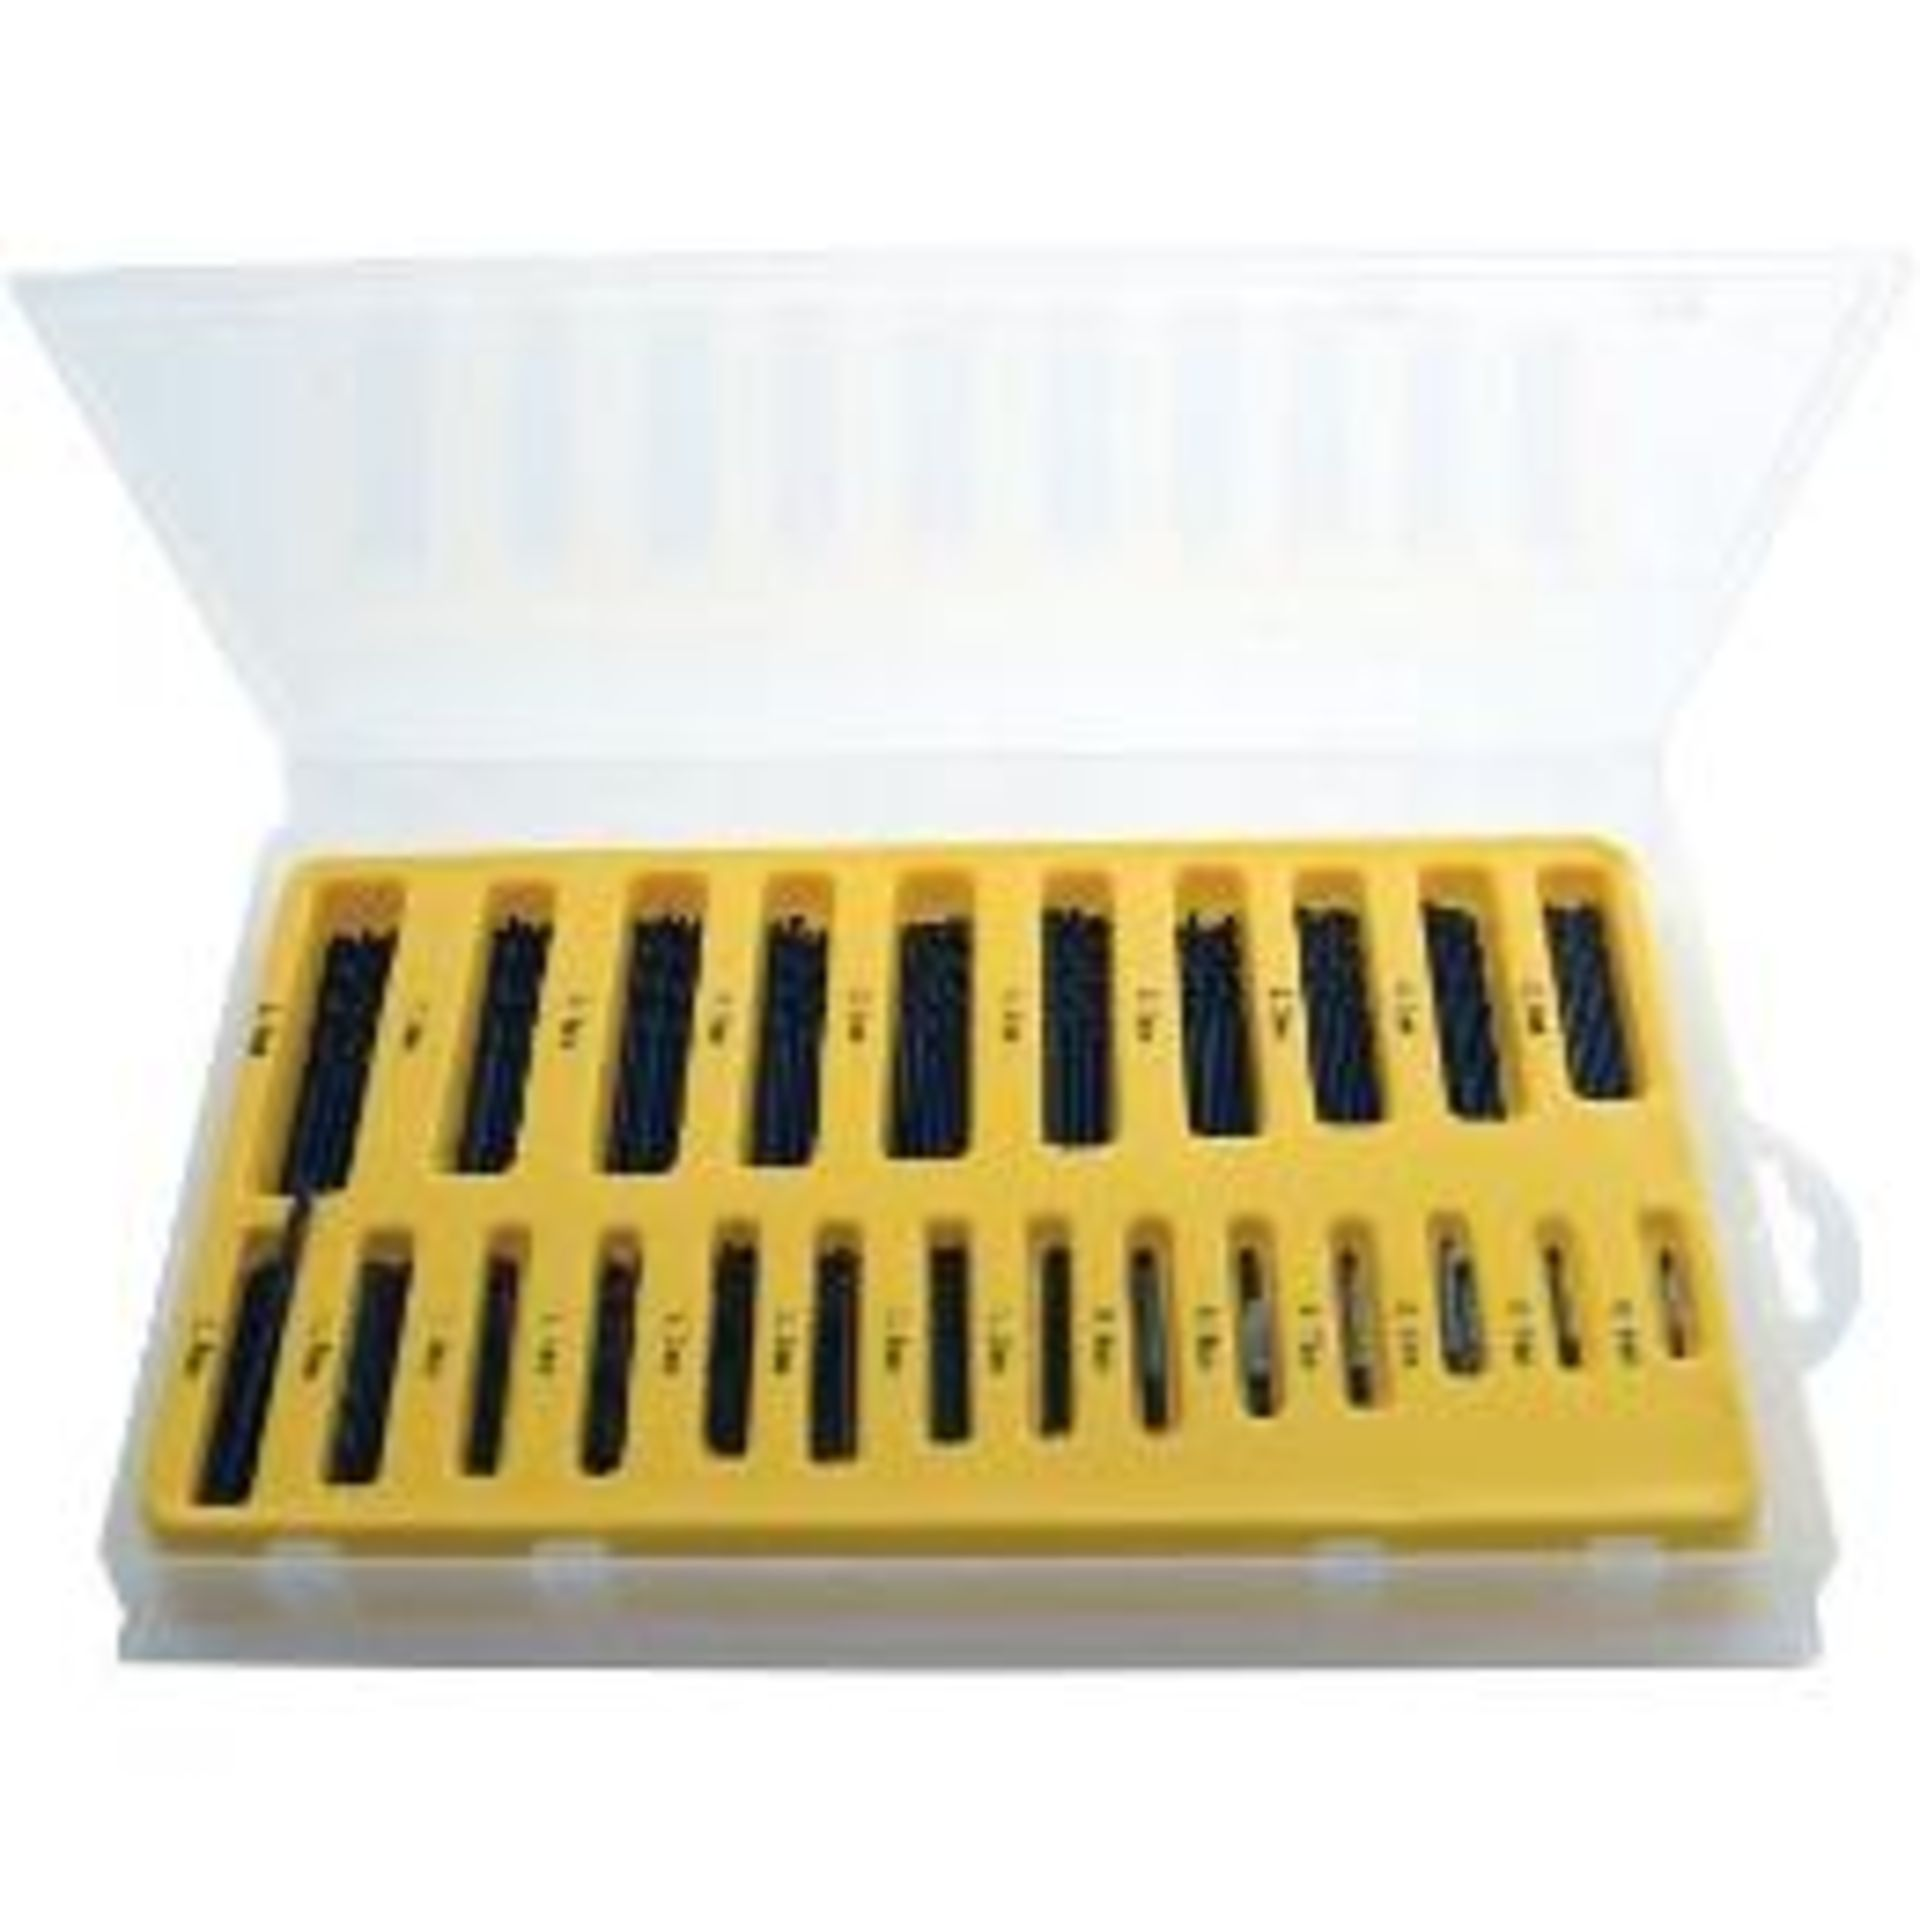 Lot 13615 - V Brand New 150 Piece Assorted Drill Bit Set - Sizes Ranging From 0.4mm to 3.2mm